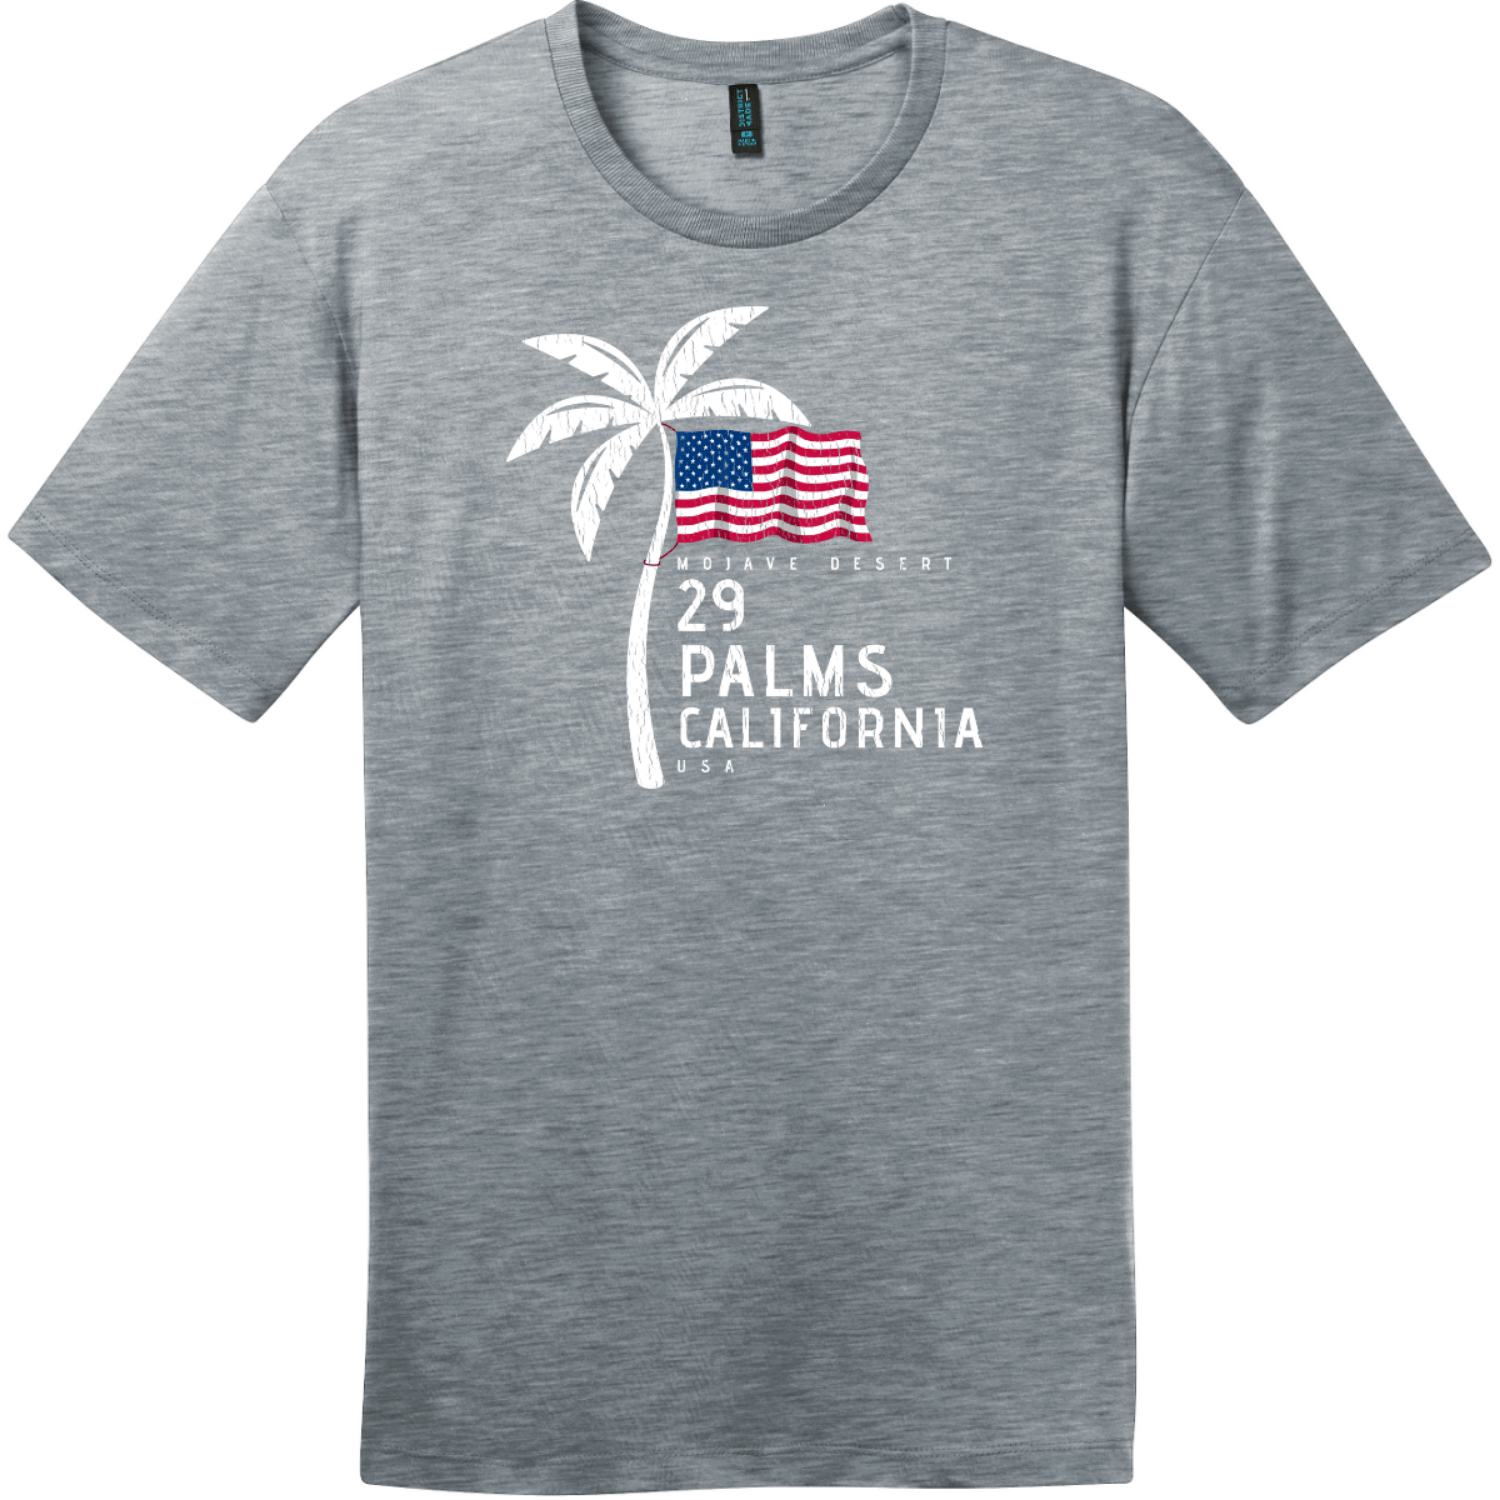 29 Palms California American Flag Palm Tree T-Shirt Heathered Steel District Perfect Weight Tee DT104